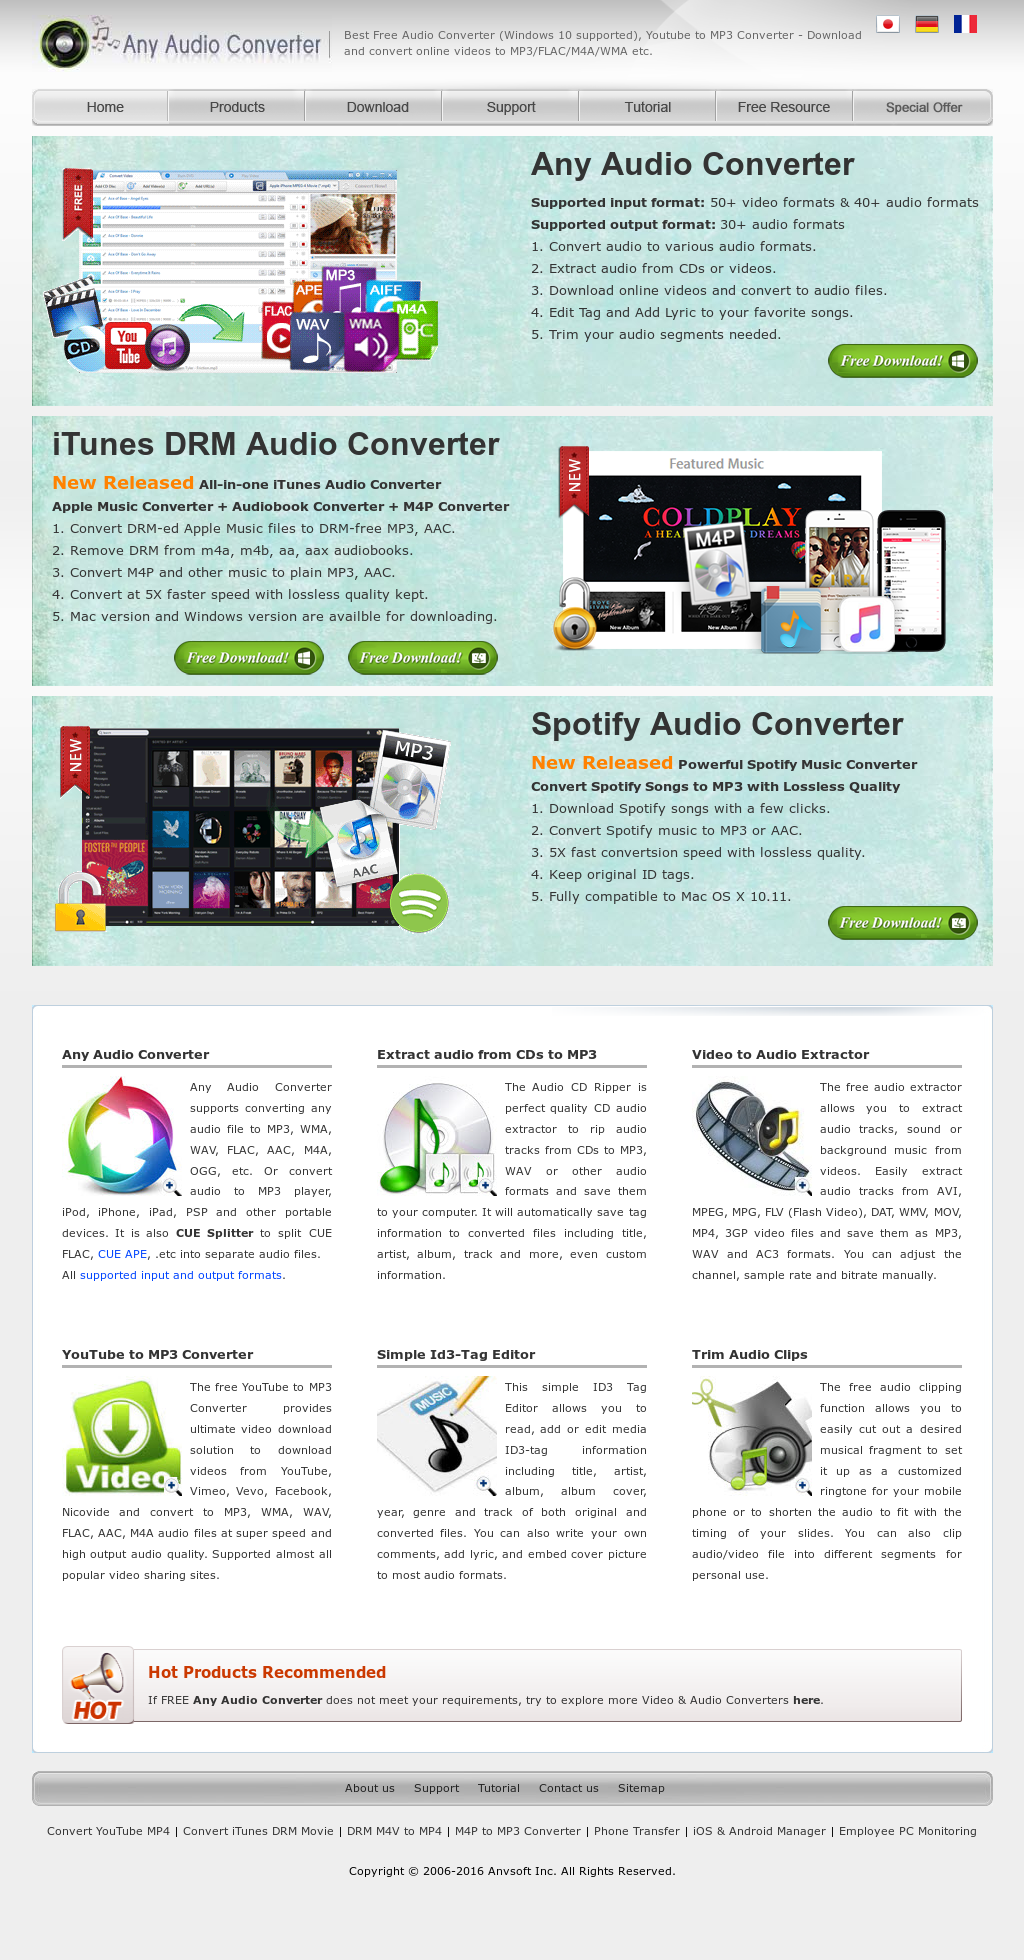 Any Audio Converter Competitors, Revenue and Employees